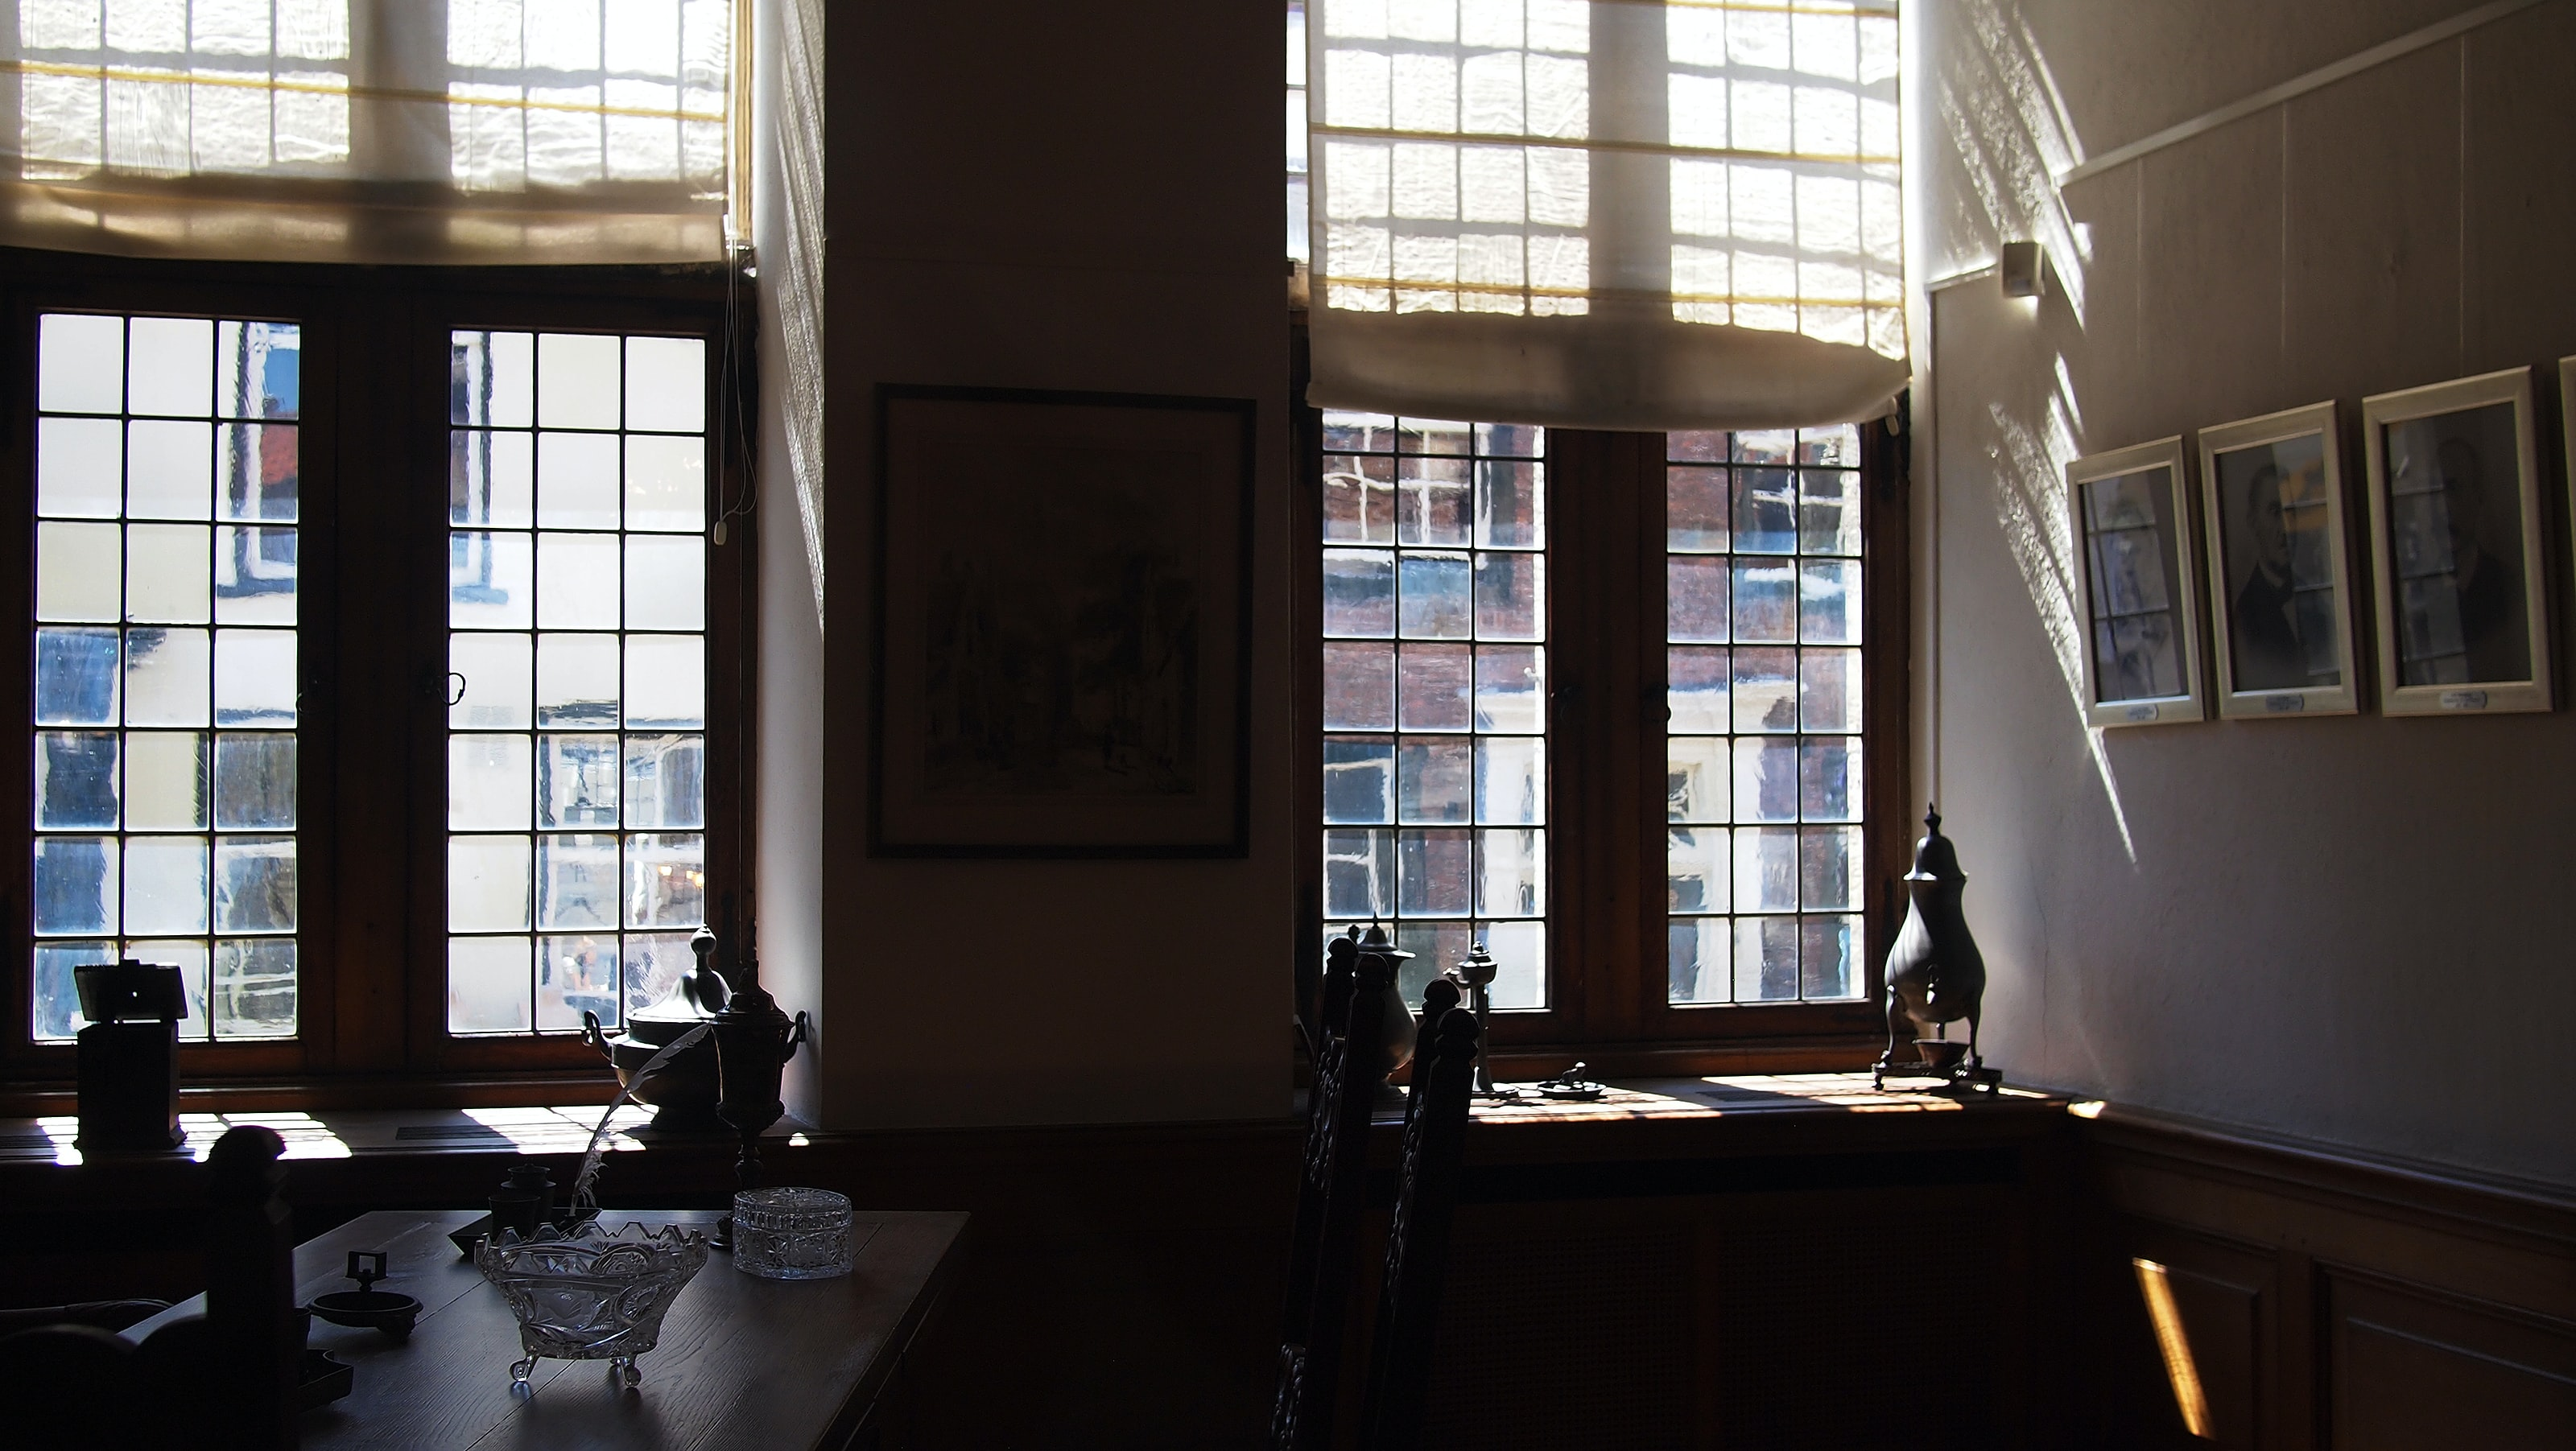 Interior of a house with pictures on the walls, tables, and windows facing an urban setting